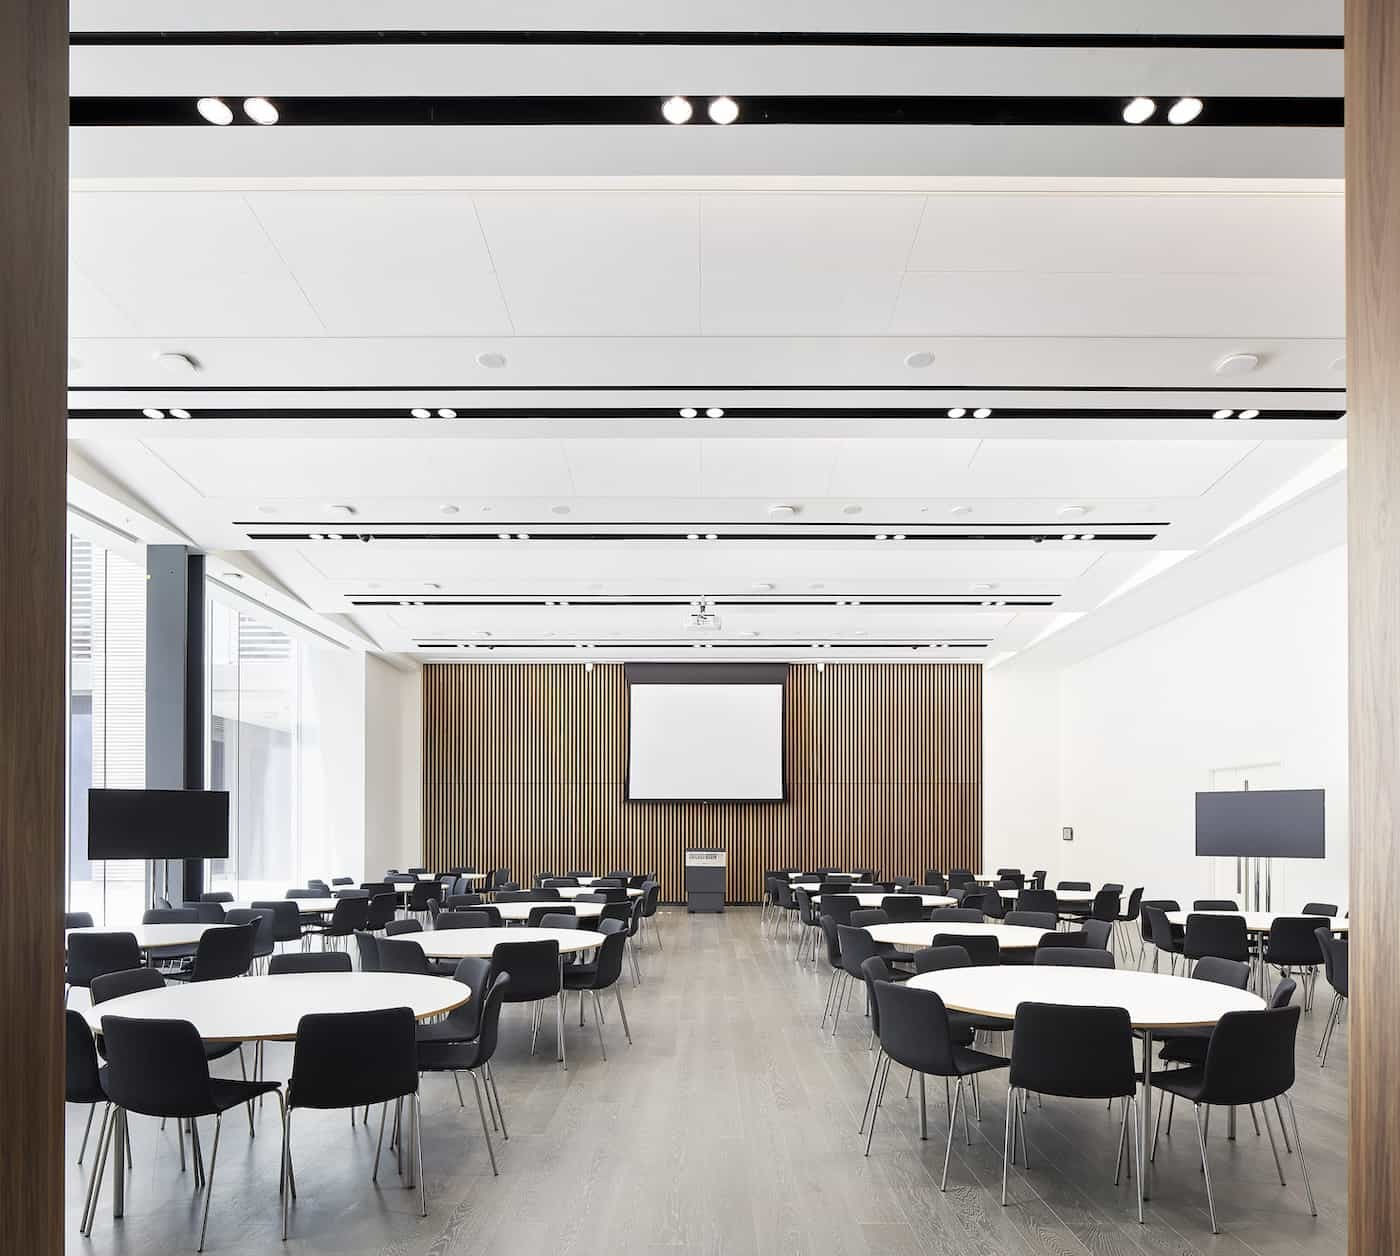 Chicago university conference room design